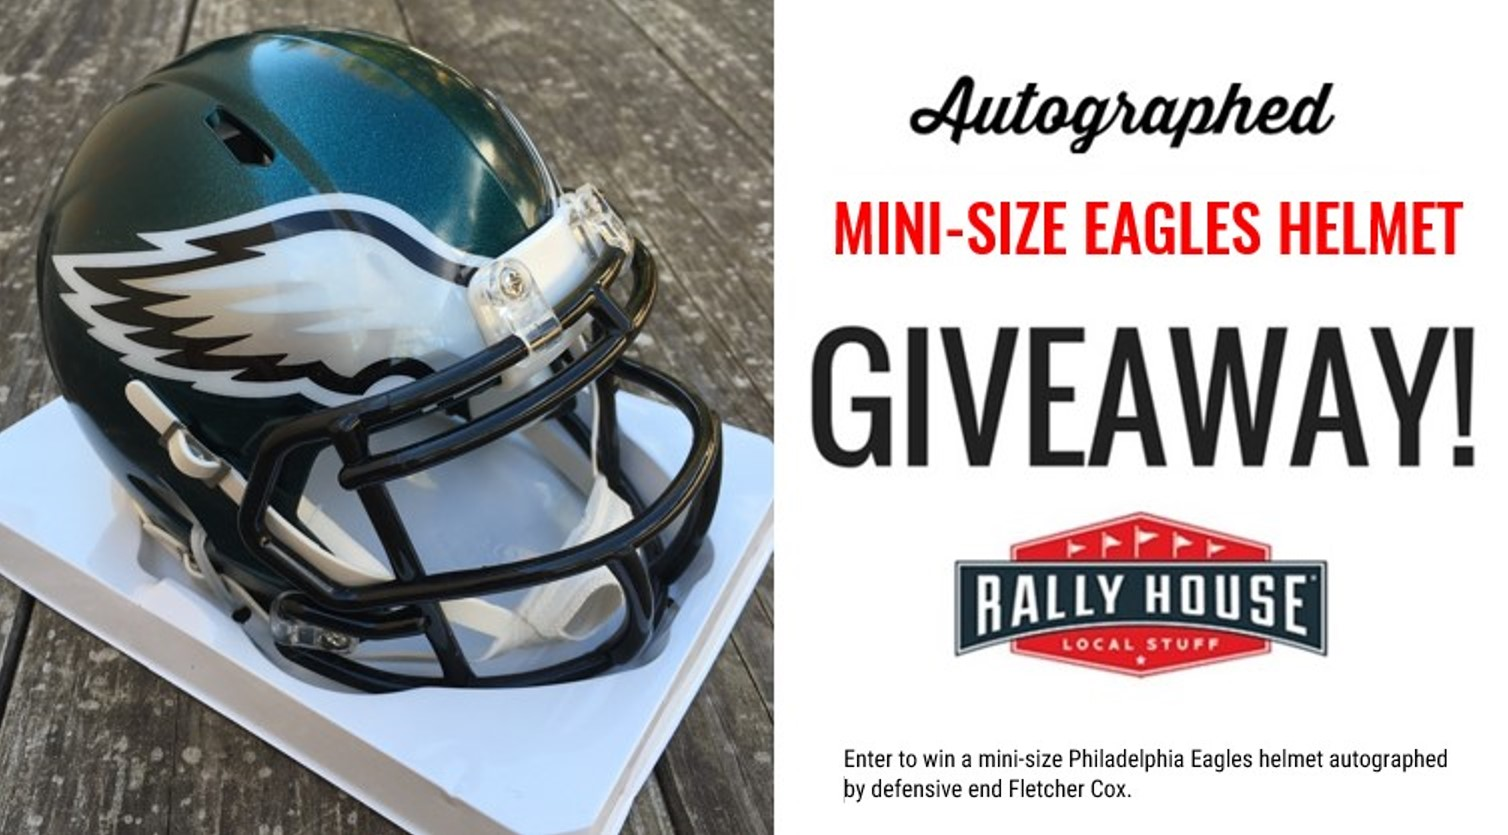 Win an autographed mini-sized Eagles helmet